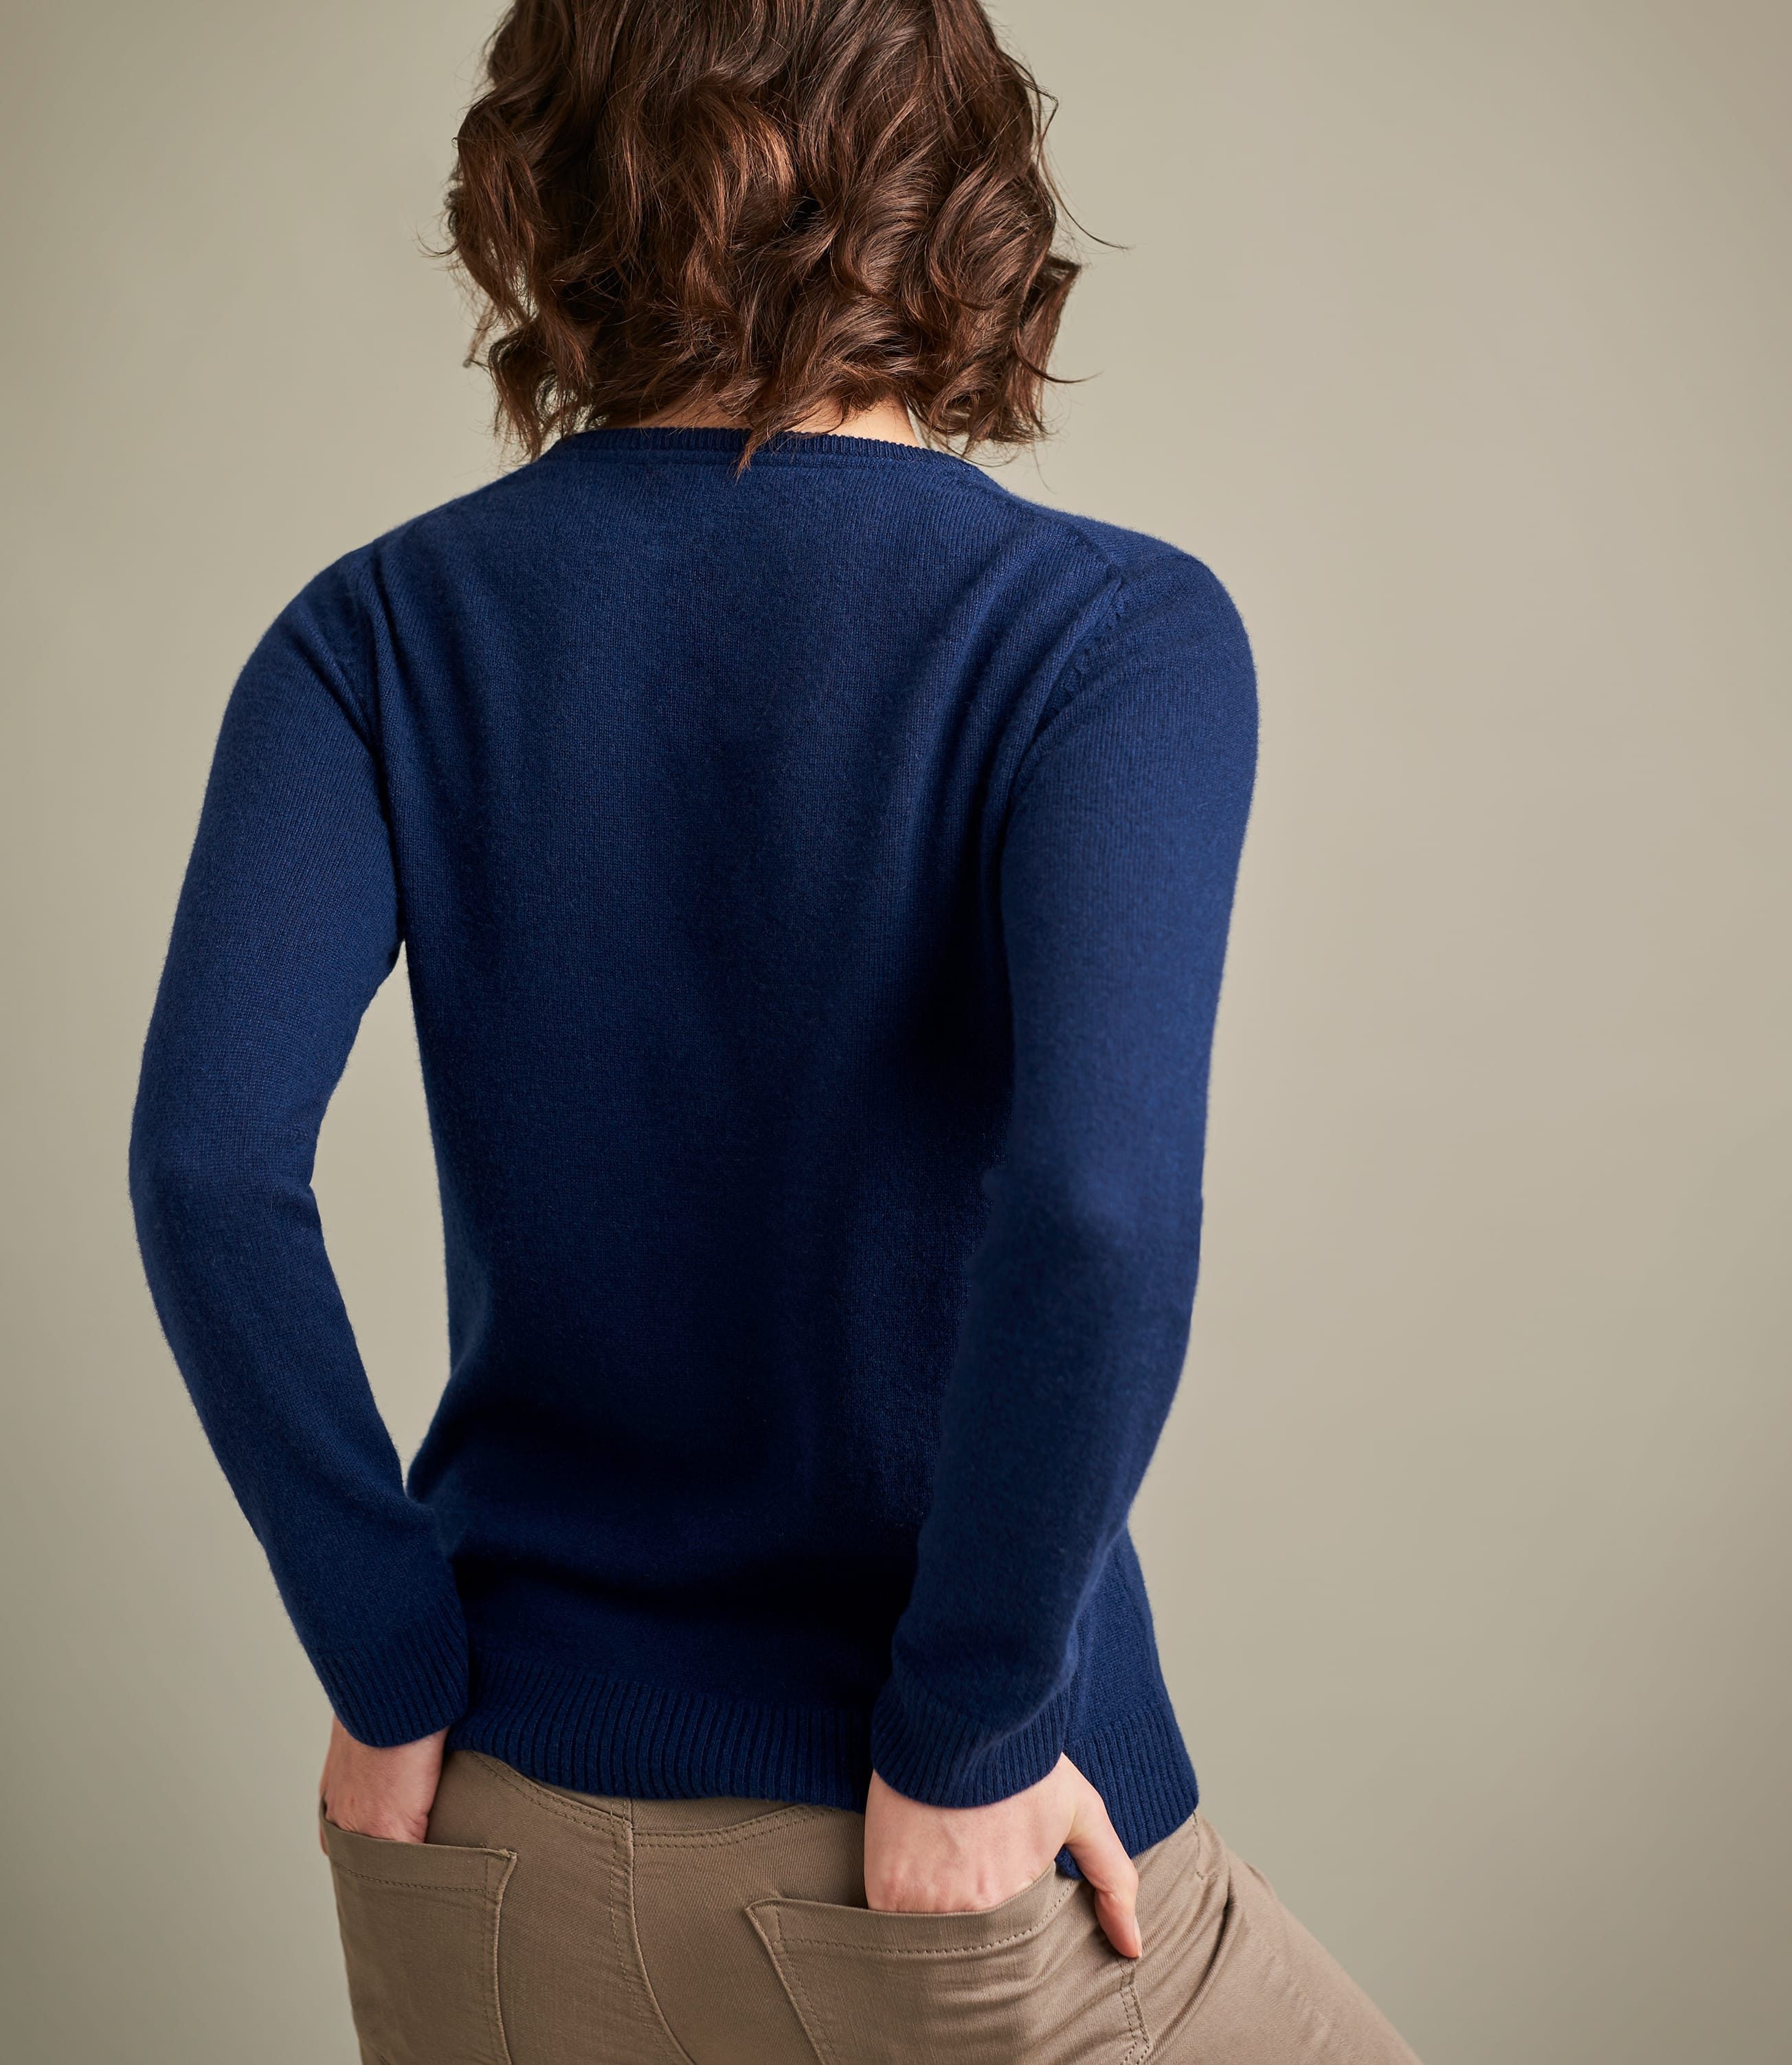 Navy | Womens Pure Cashmere Crew Neck Jumper | WoolOvers UK